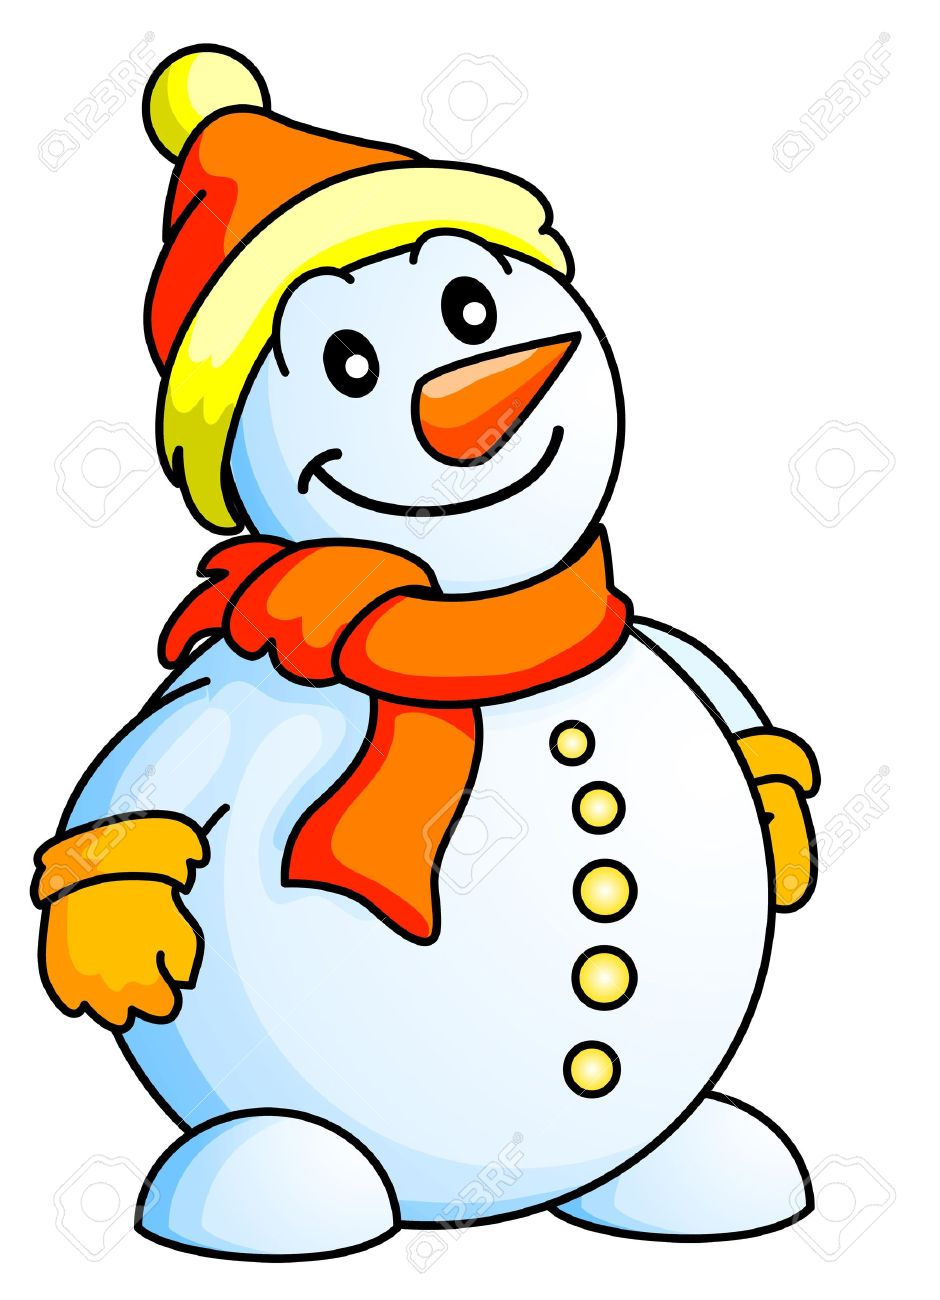 Frosty The Snowman Clipart Group with 56+ items.